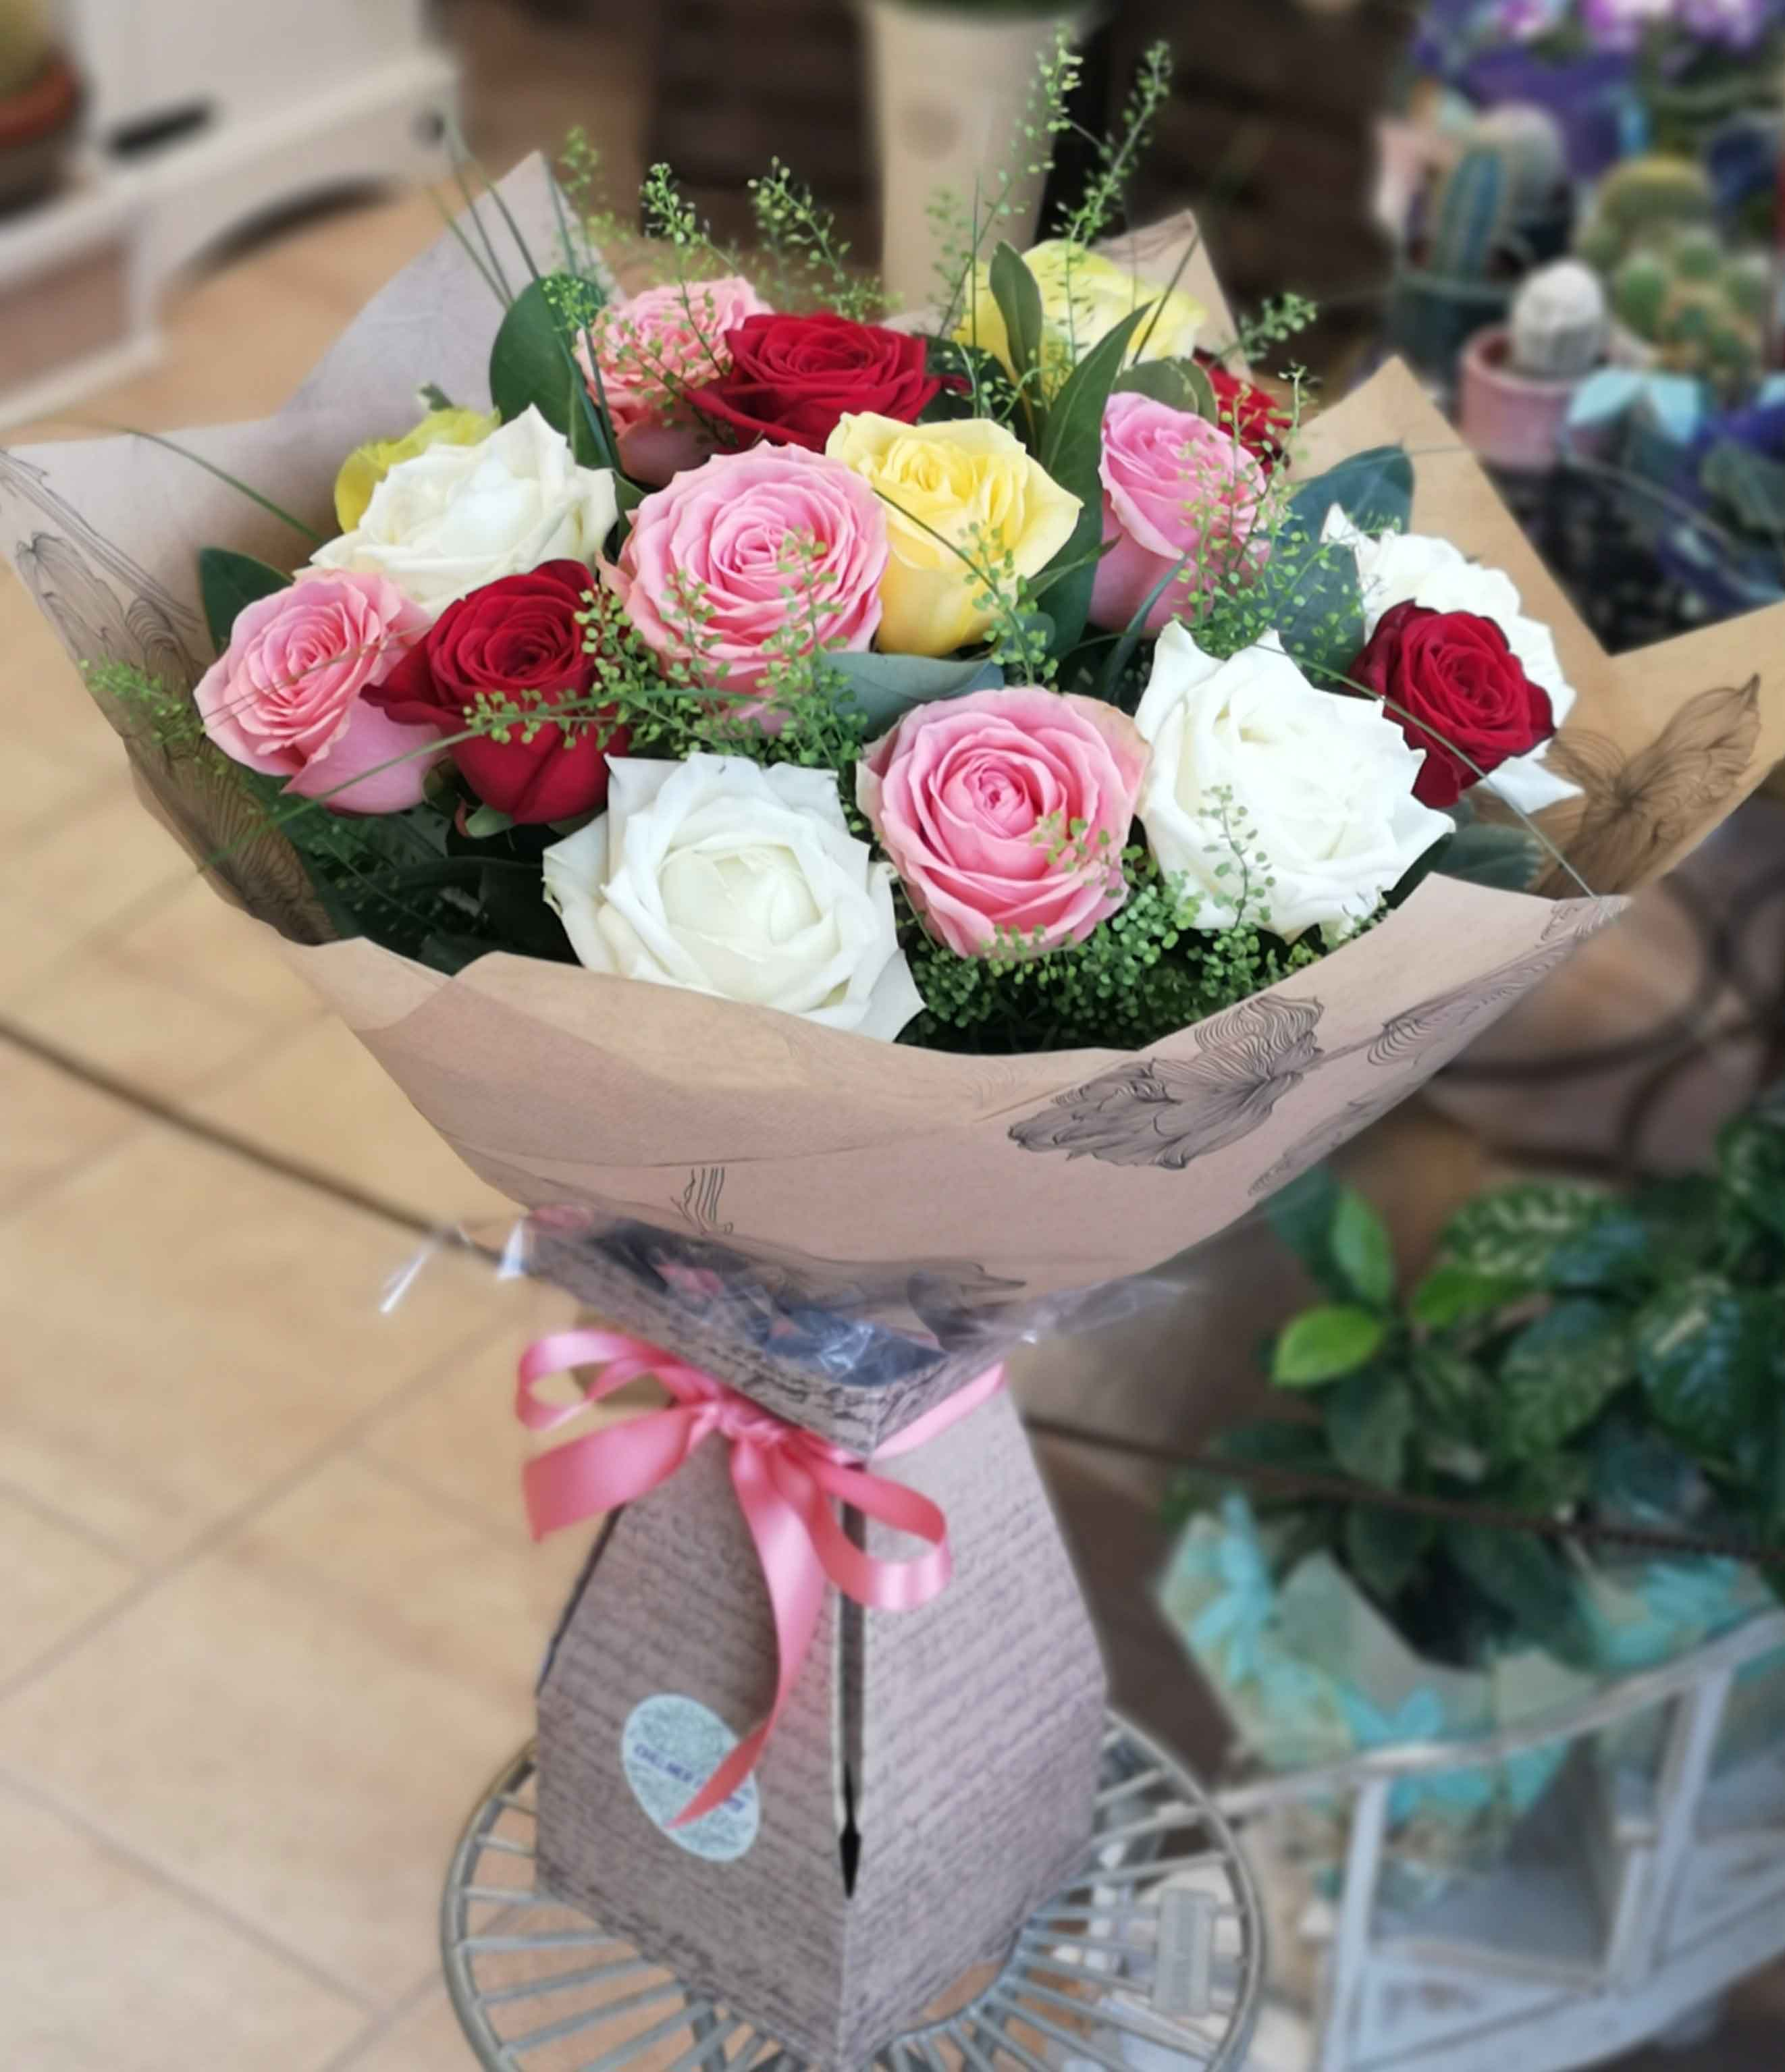 Mixed roses hand-tied